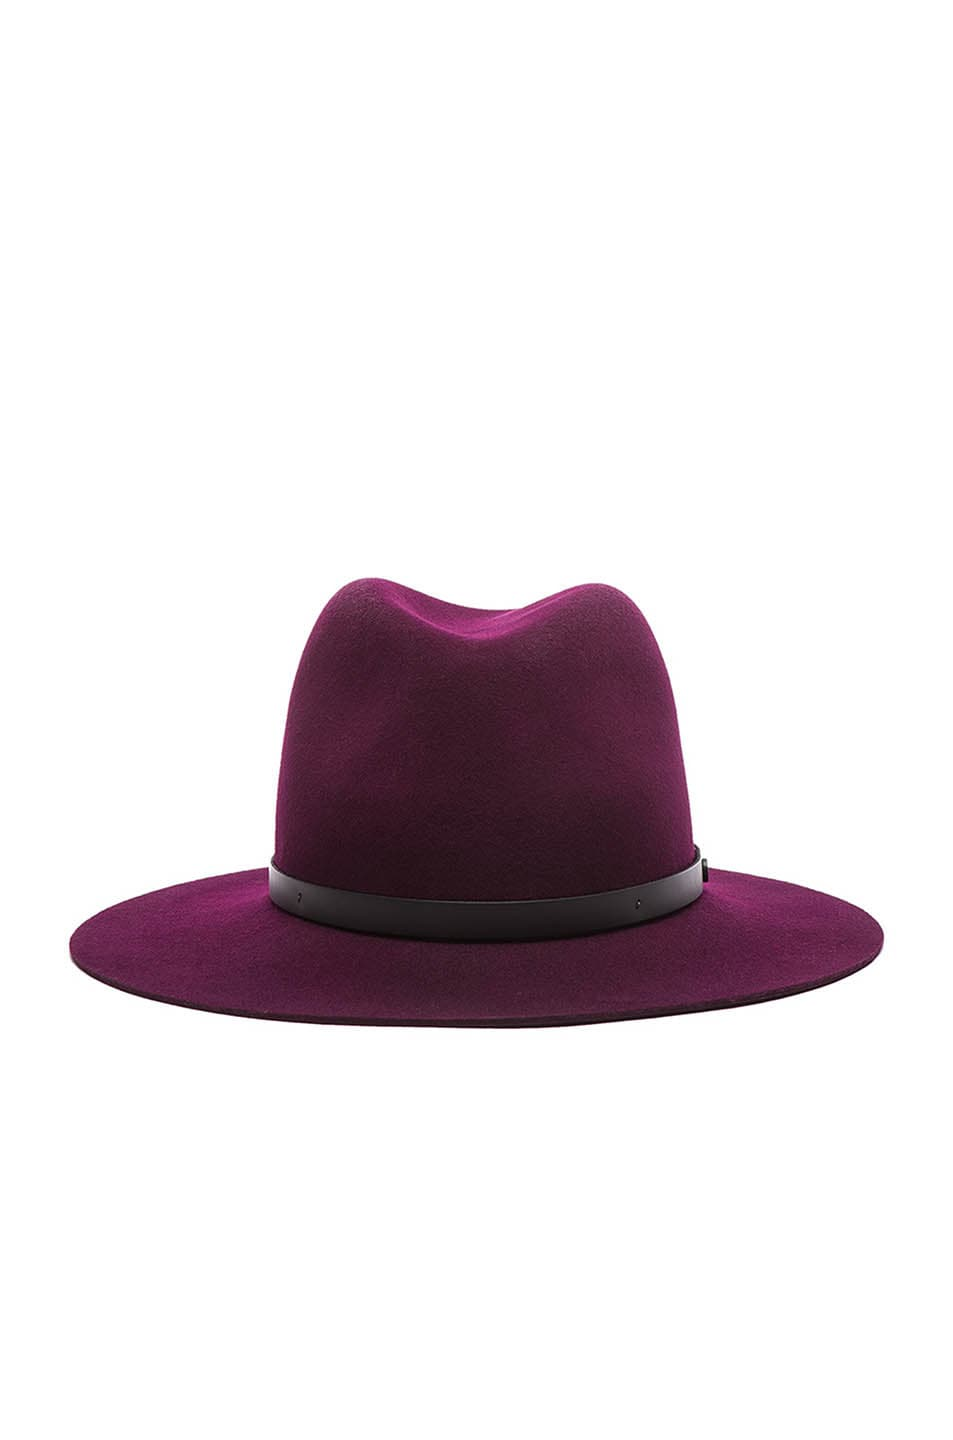 Image 1 of Rag & Bone Floppy Brim Fedora Hat in Cranberry